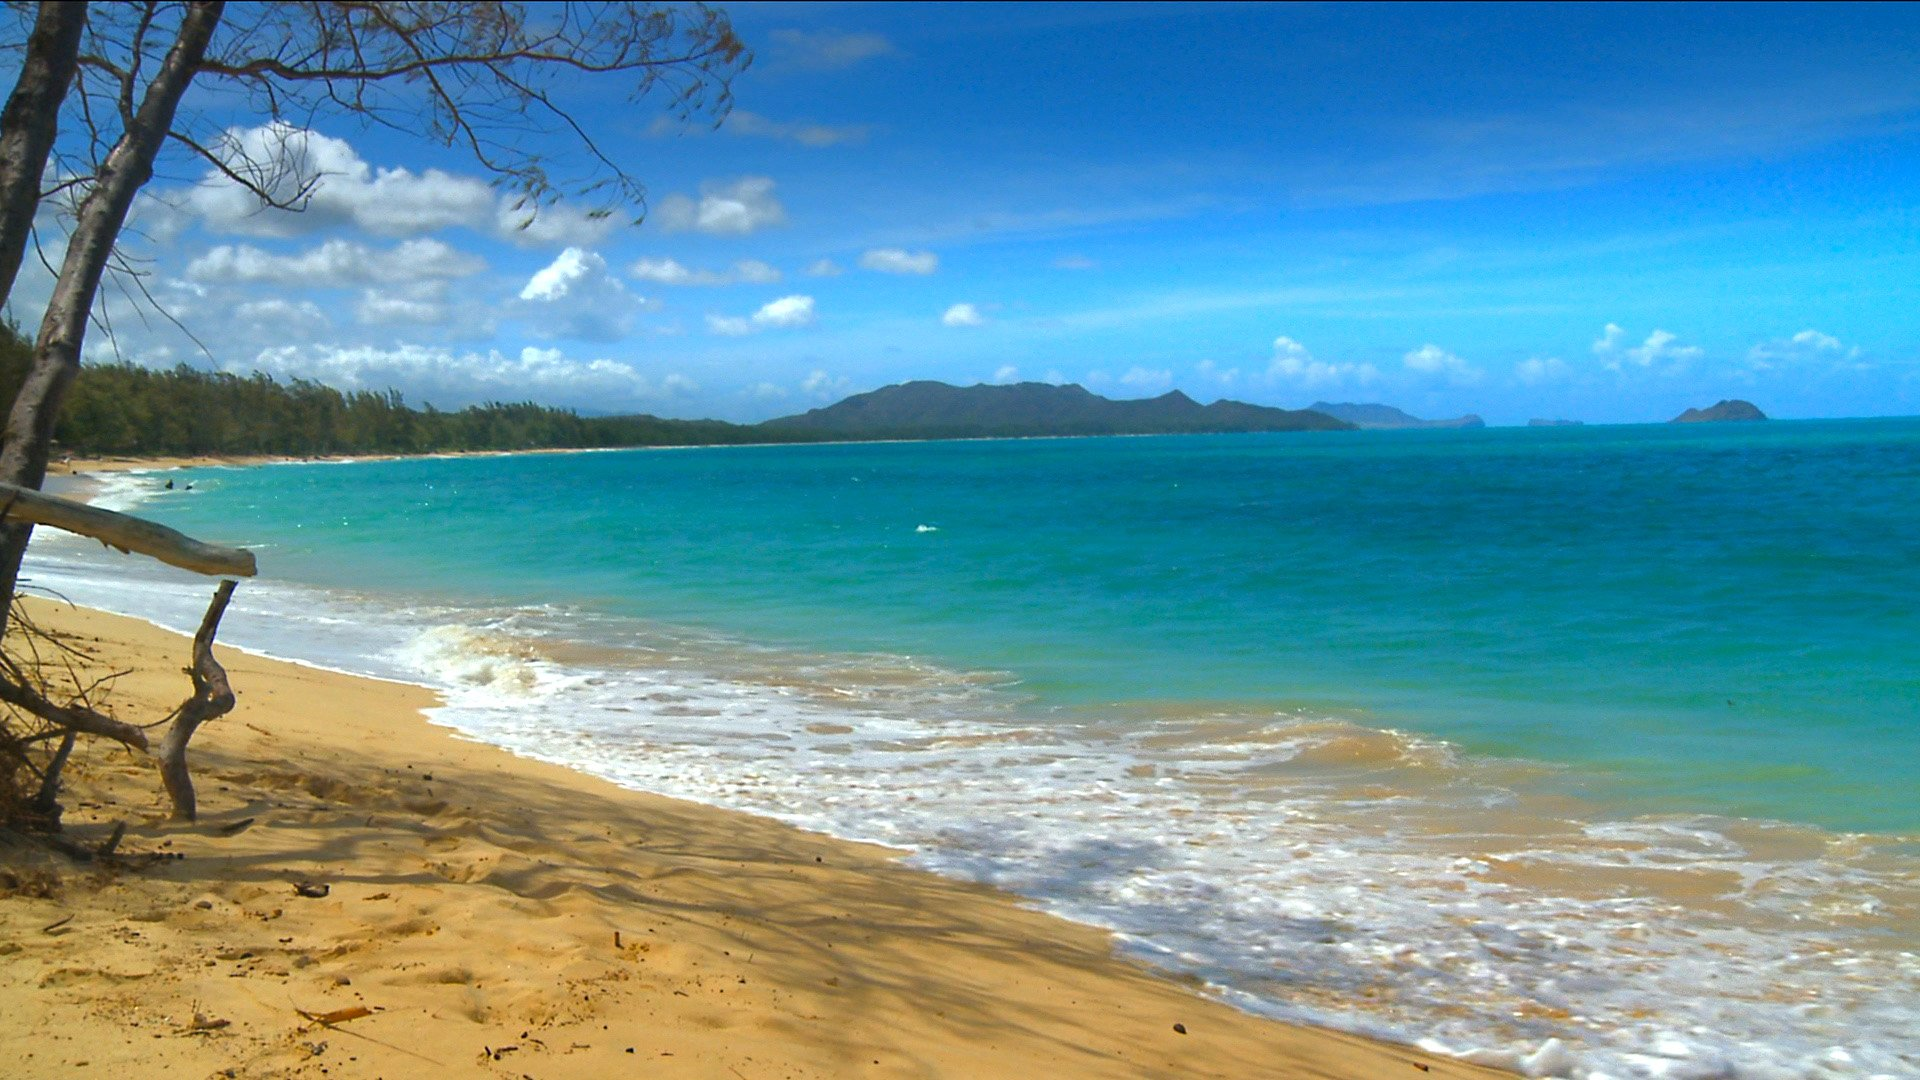 HAWAII BEACHES 1   PHOTOS 2 of 4 1920x1080